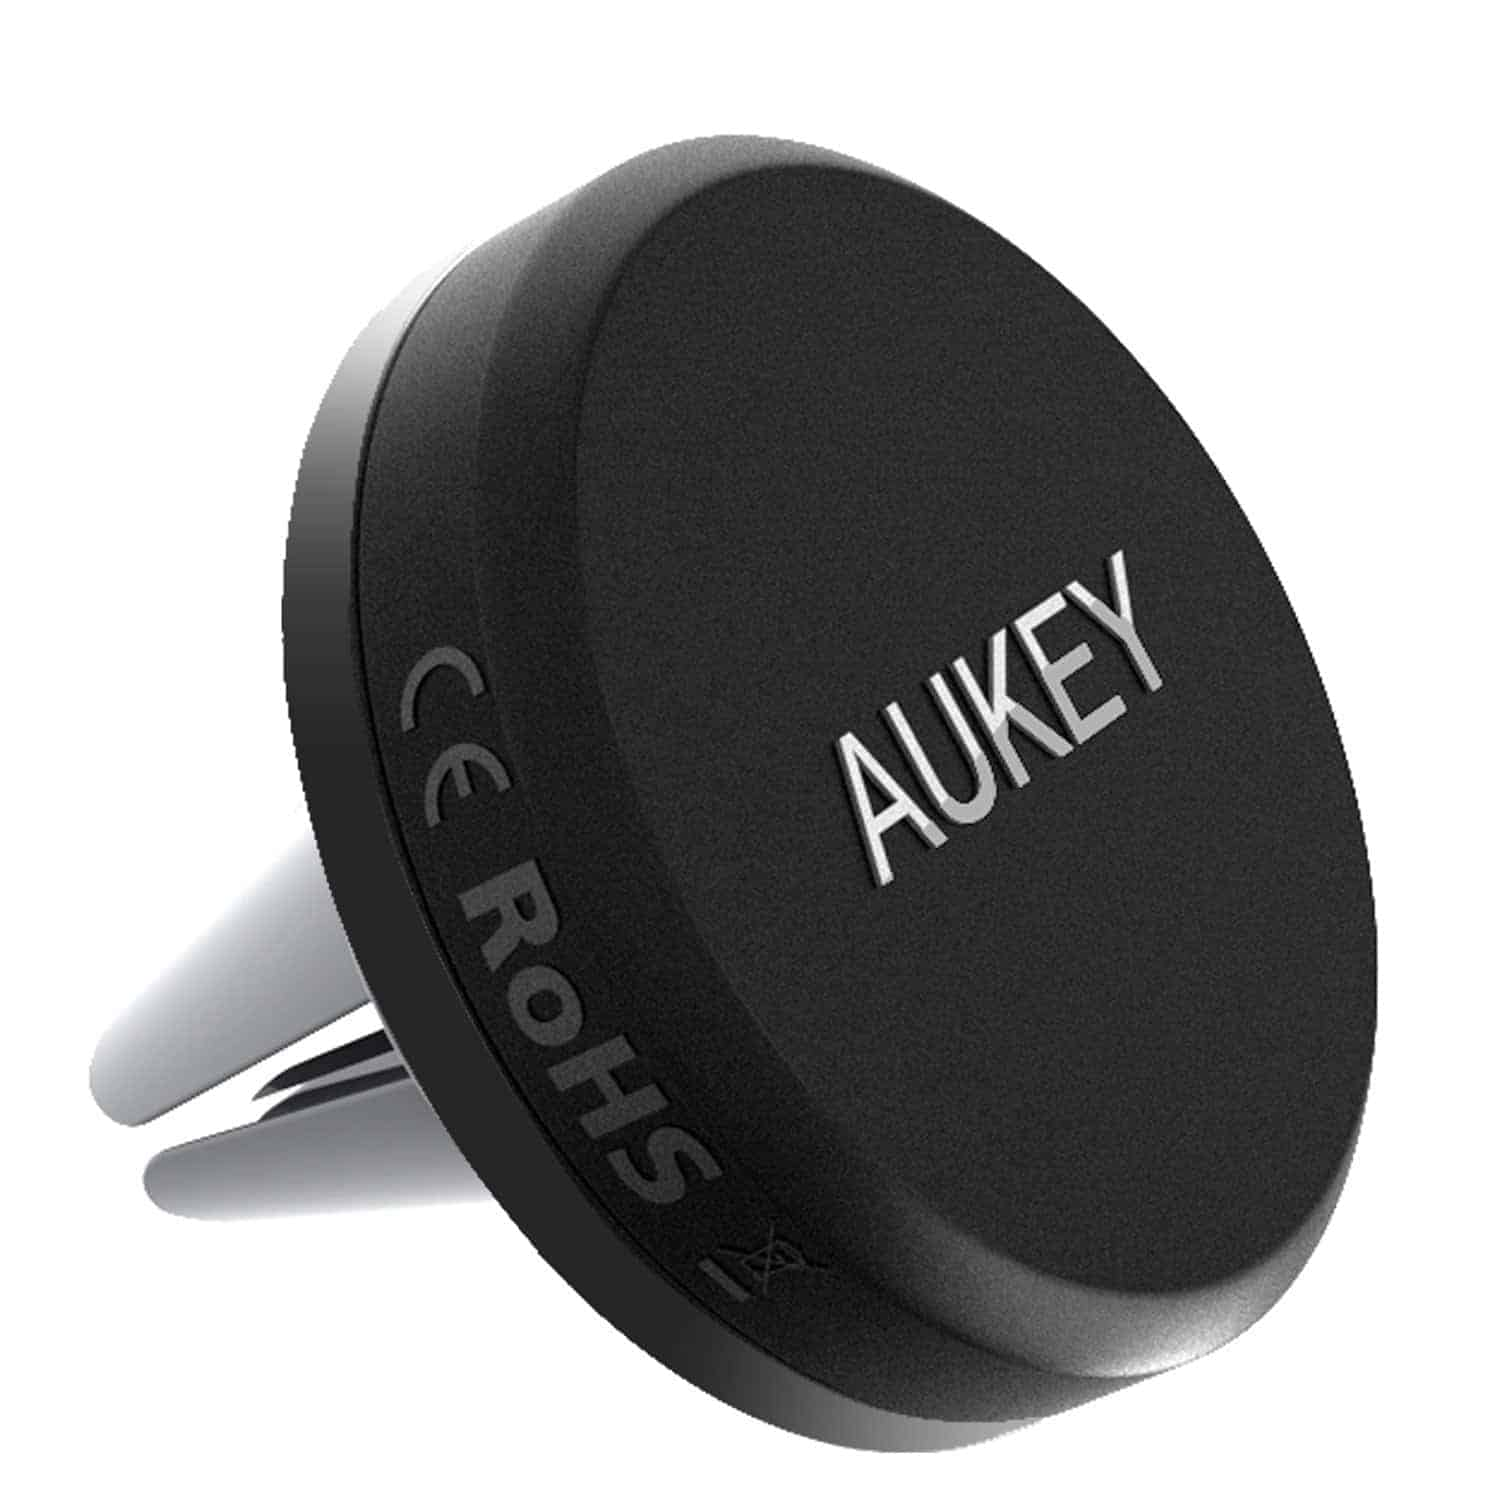 Aukey has a really sleek looking car mount here that attaches to the air vent in your car this one is pretty small but still pretty strong thanks to its